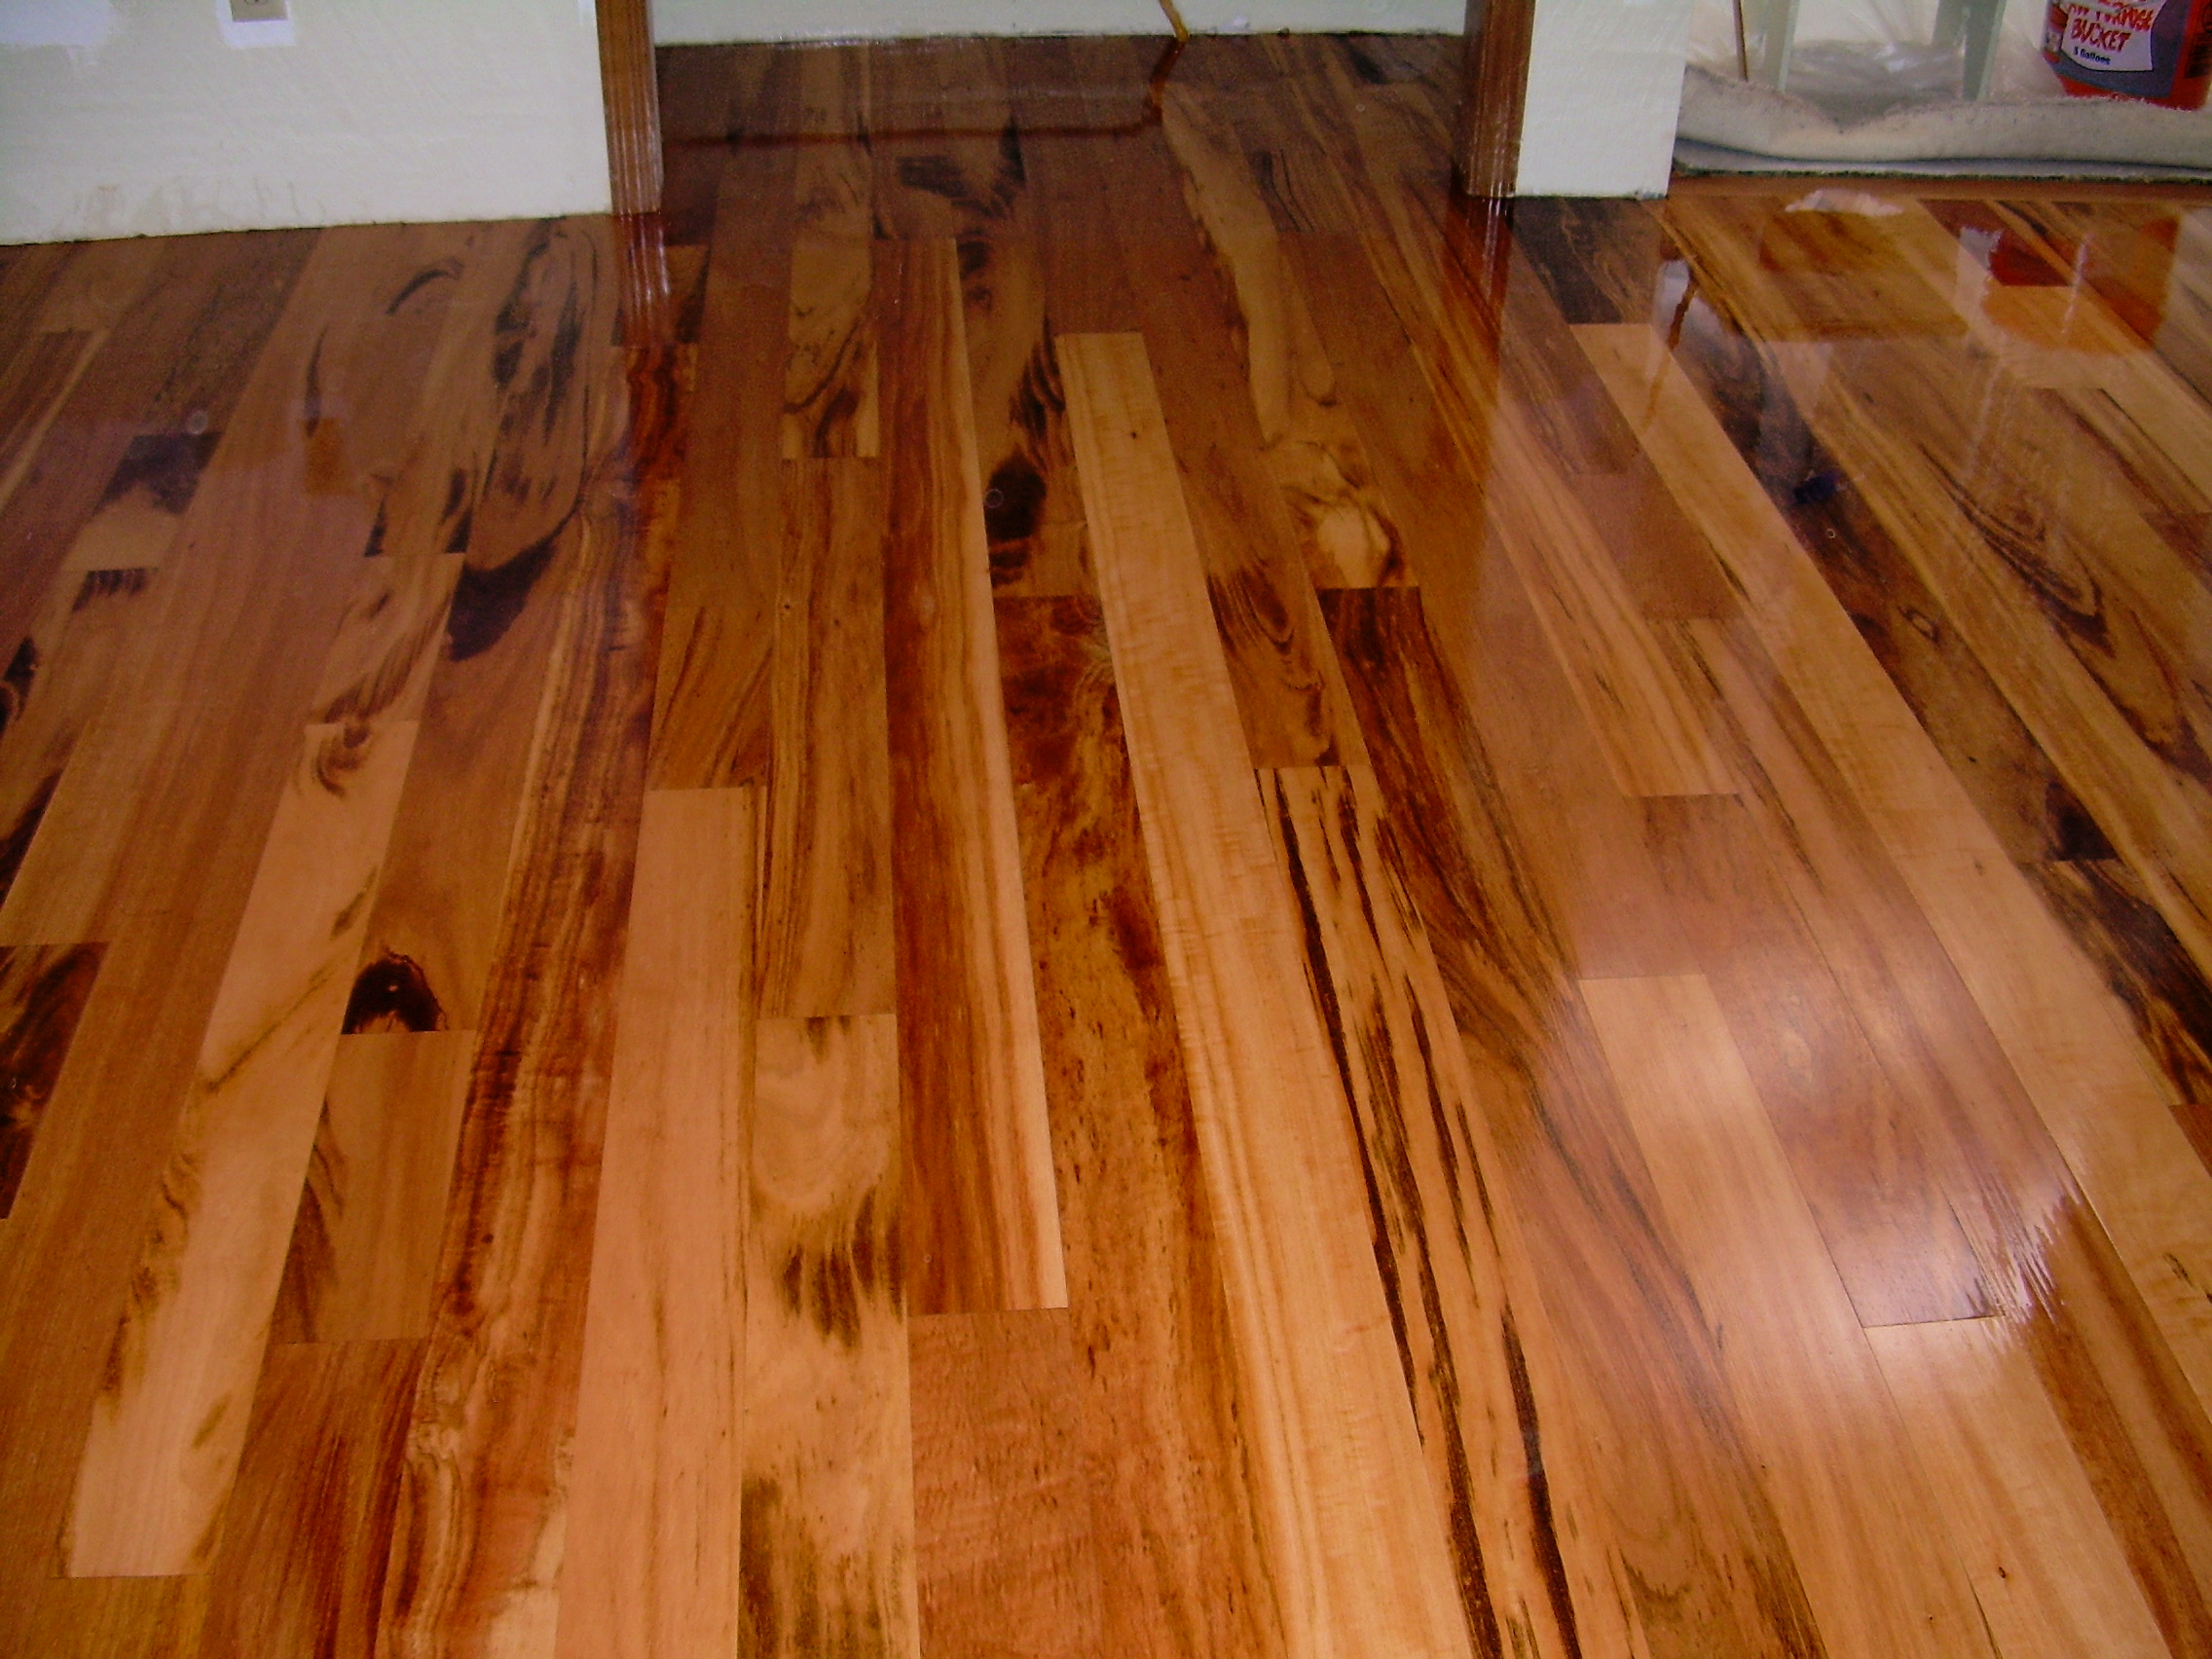 Brazilian Koa Tigerwood Flooring The Flooring Blog